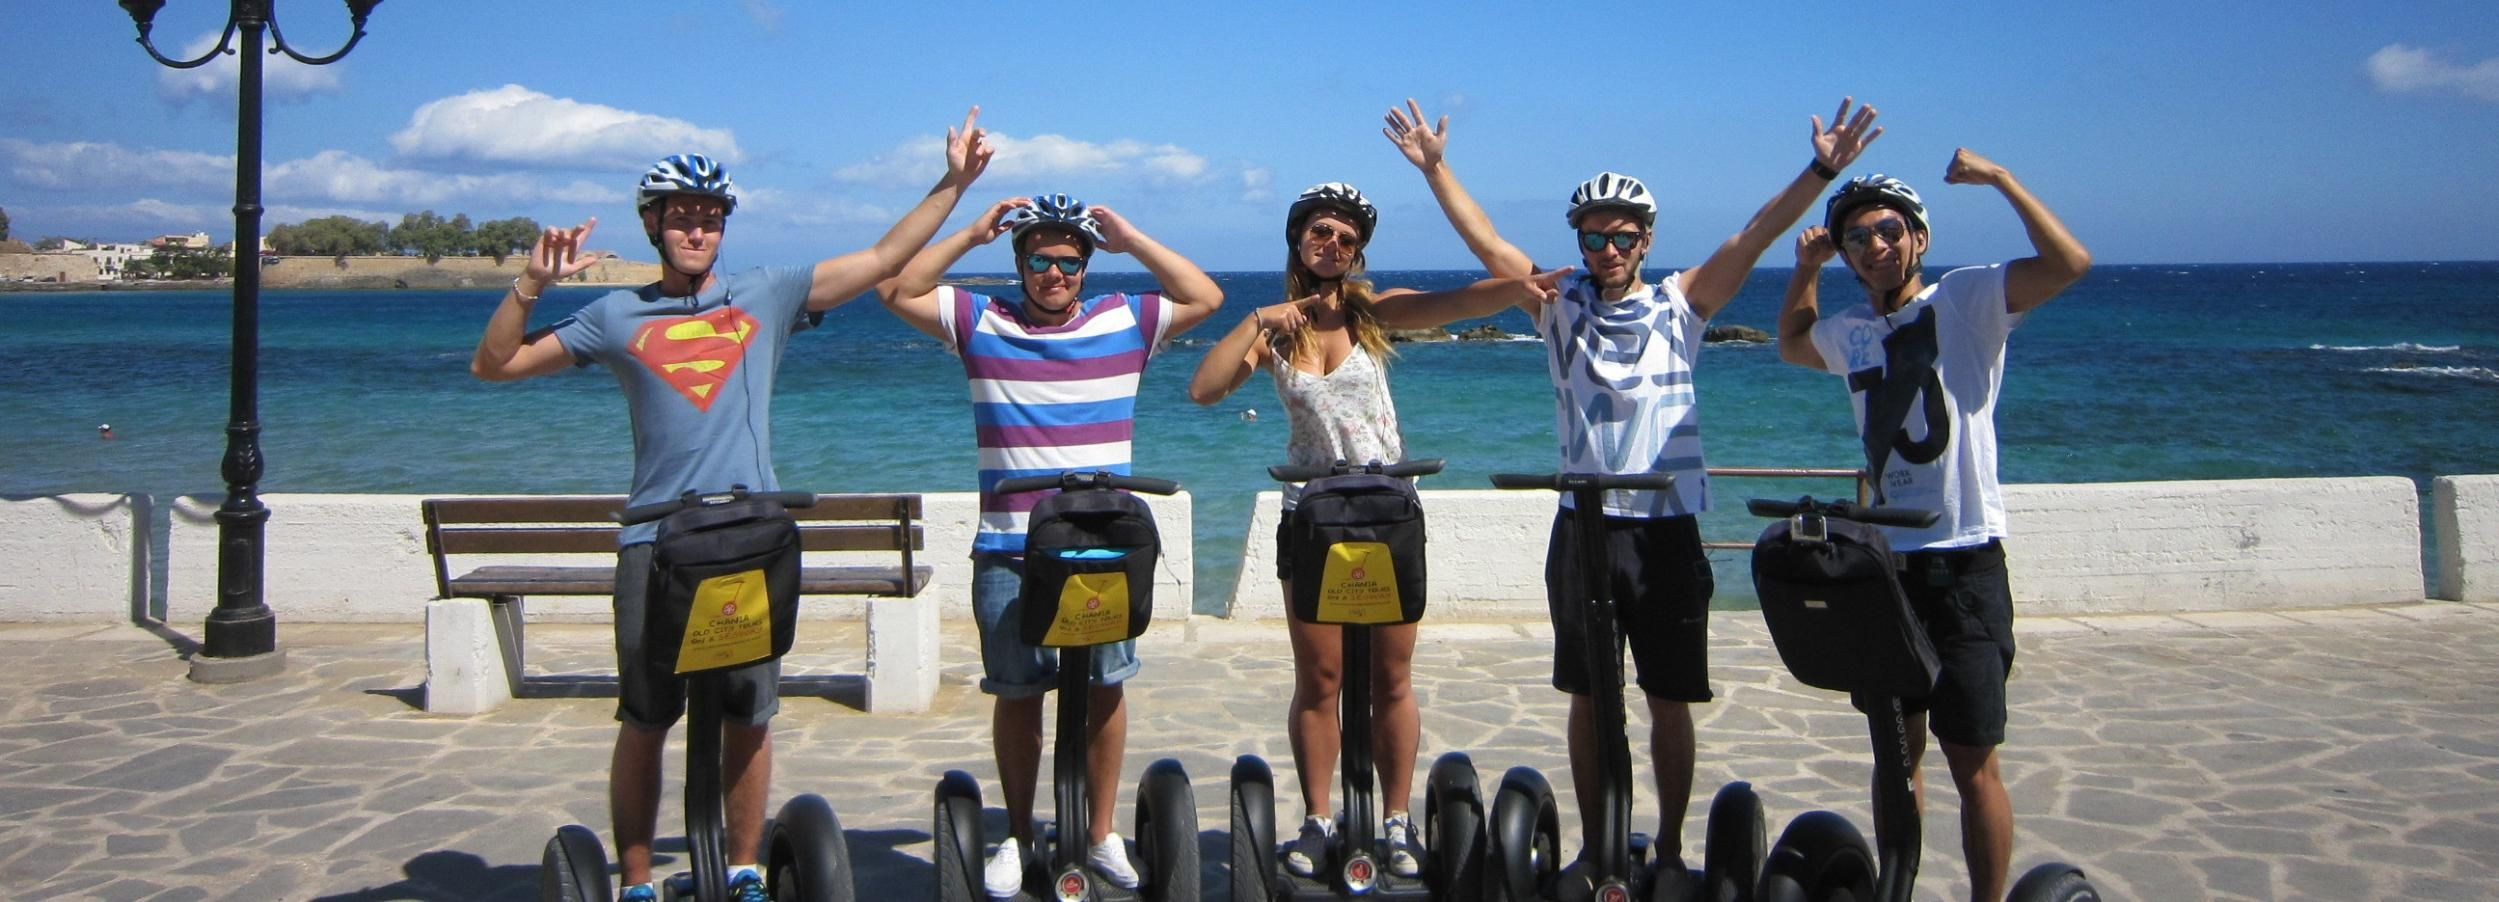 Chania: Old City & Harbor Combo Segway Tour